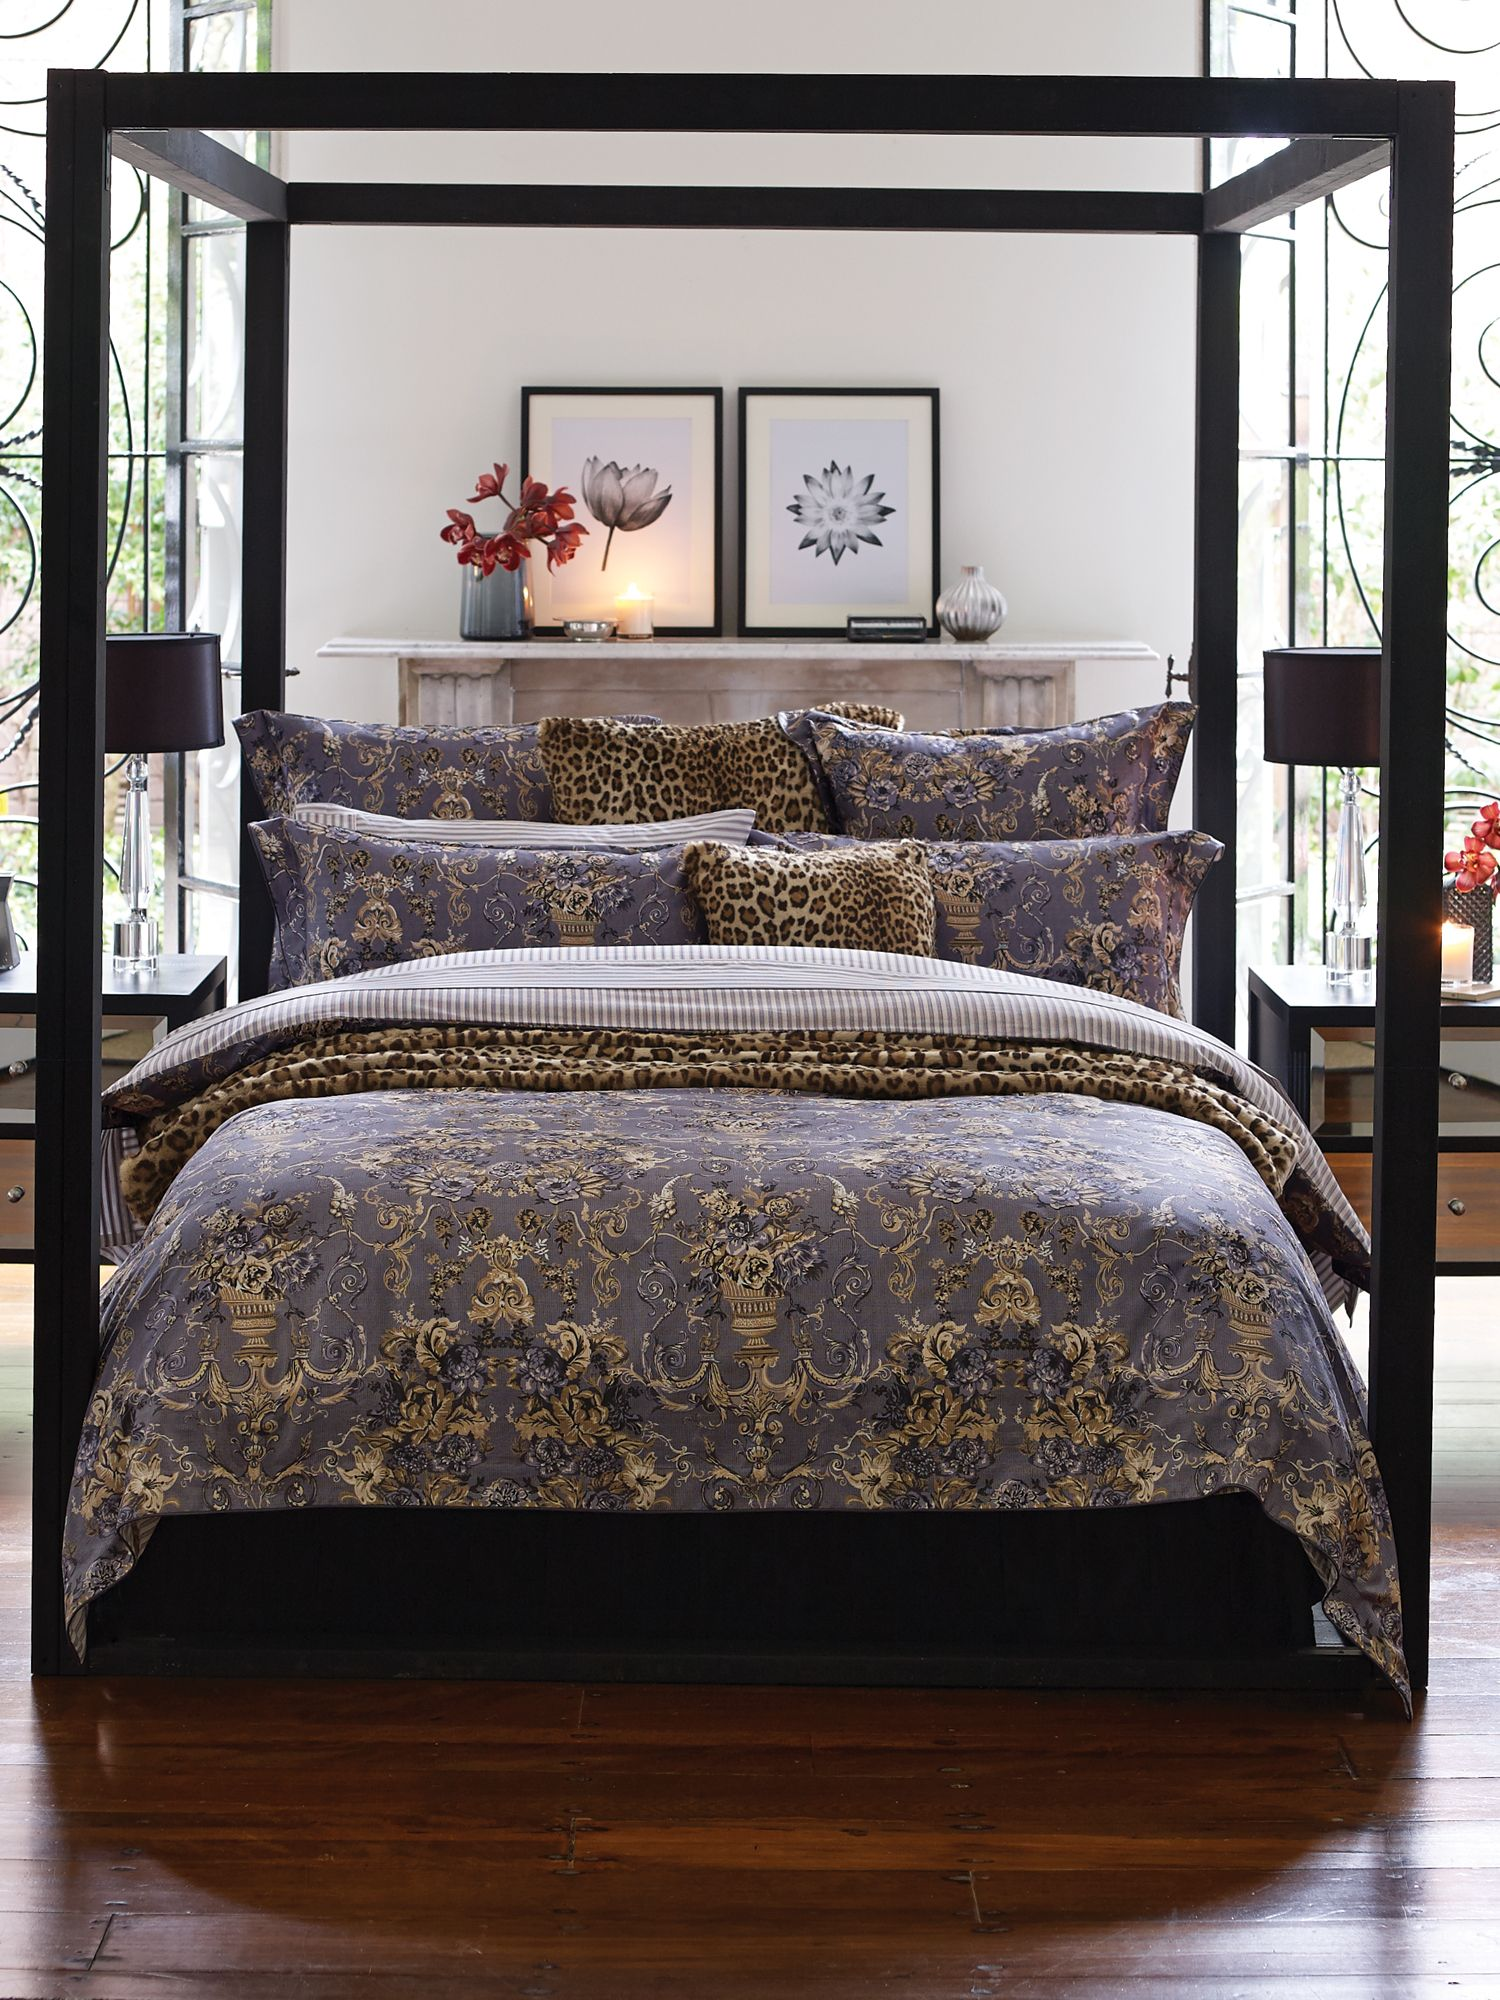 Beekman shadow bed linen